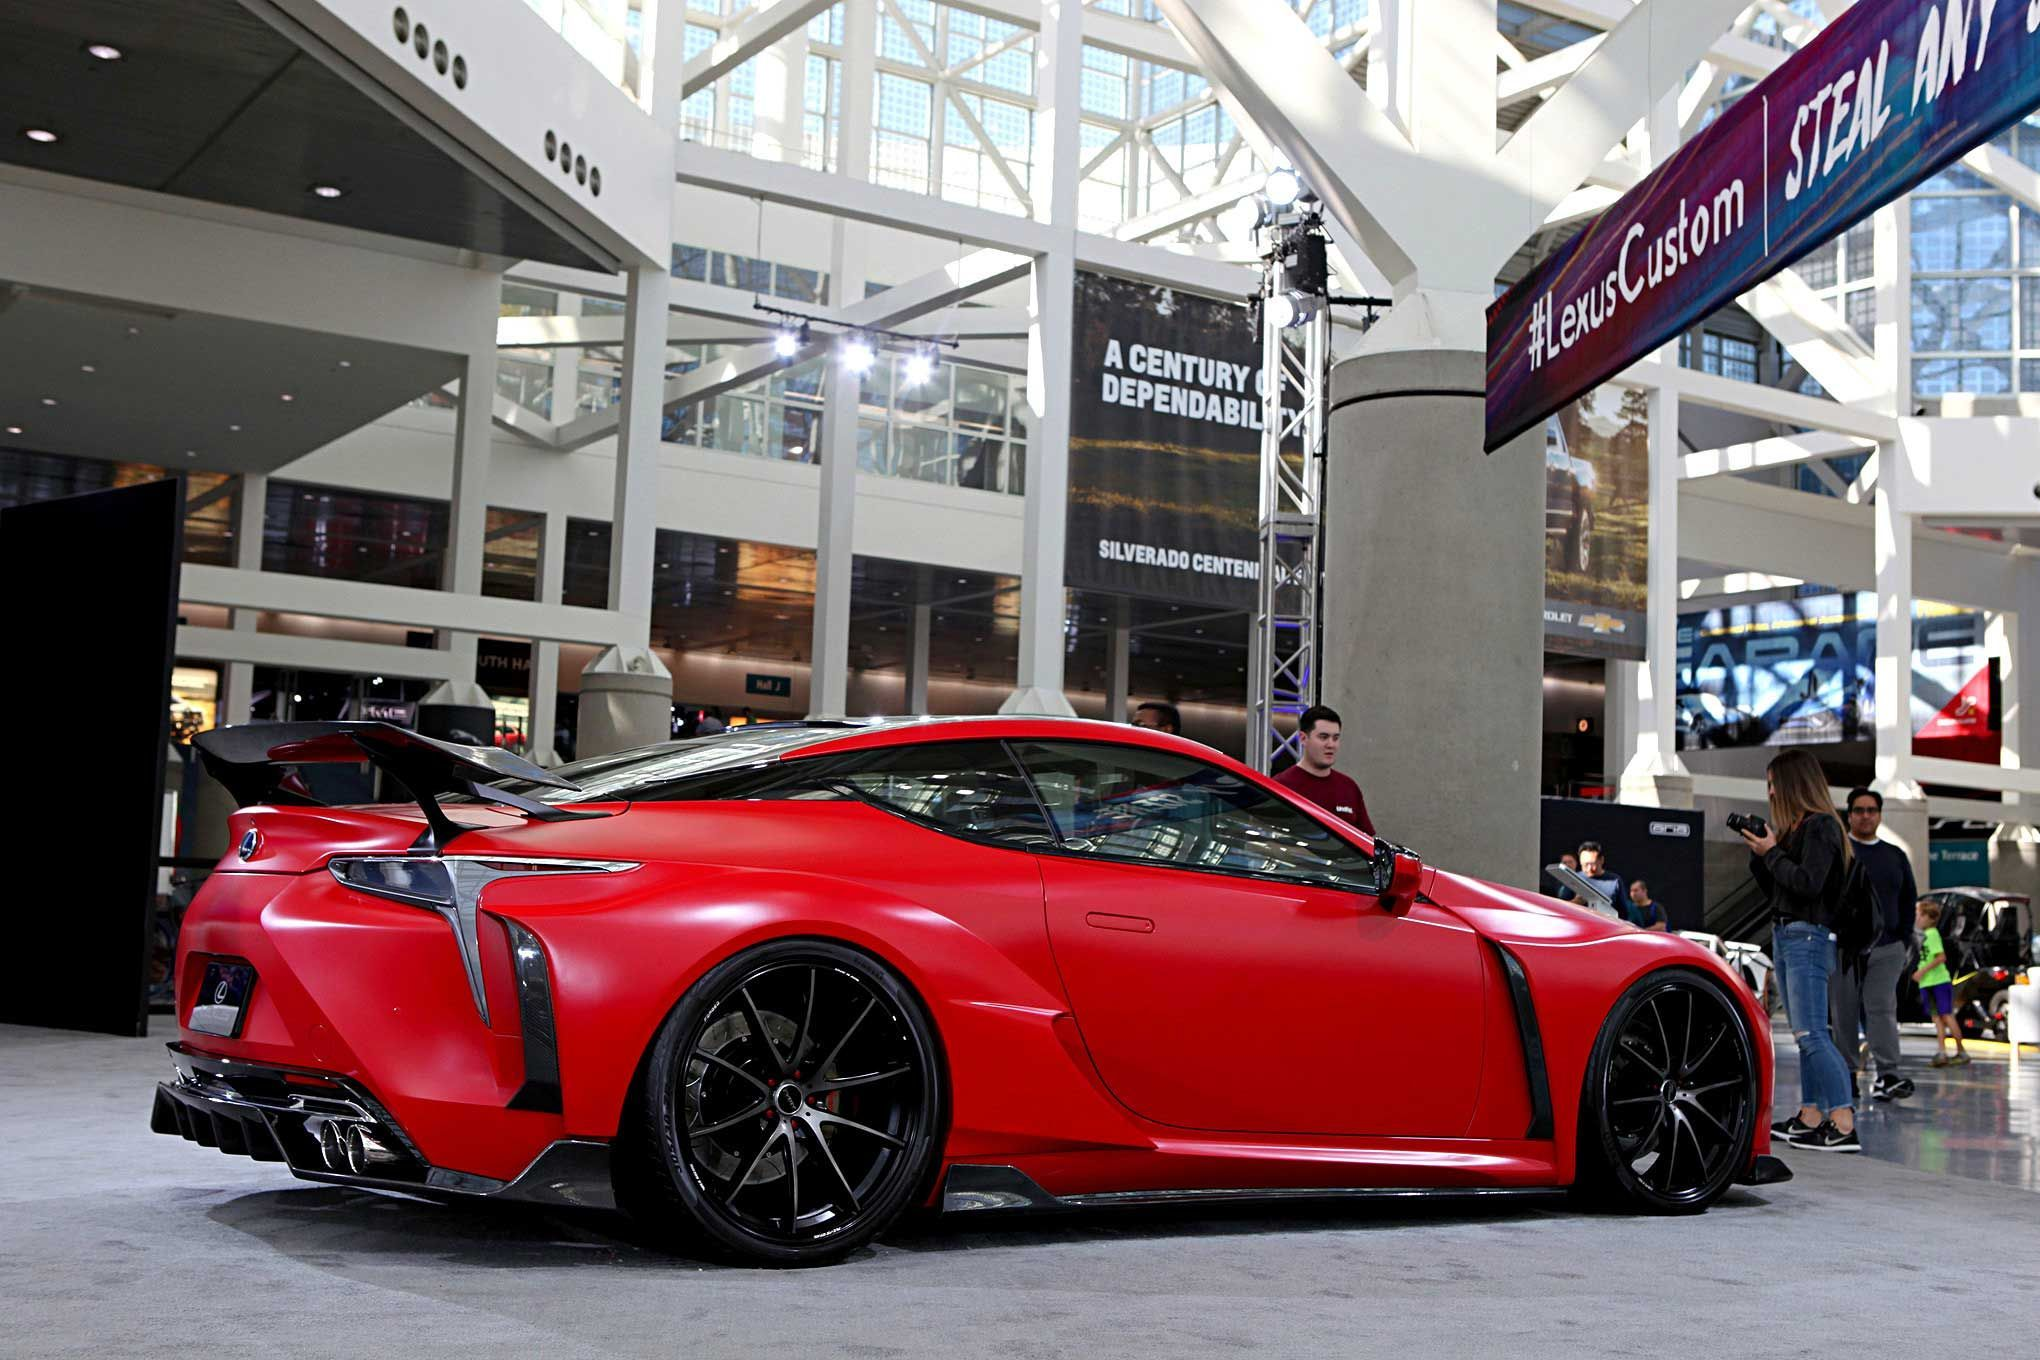 Lexus Lc500 Coupe Cars That Make You Happy Coupe Lexus Coupe Cars